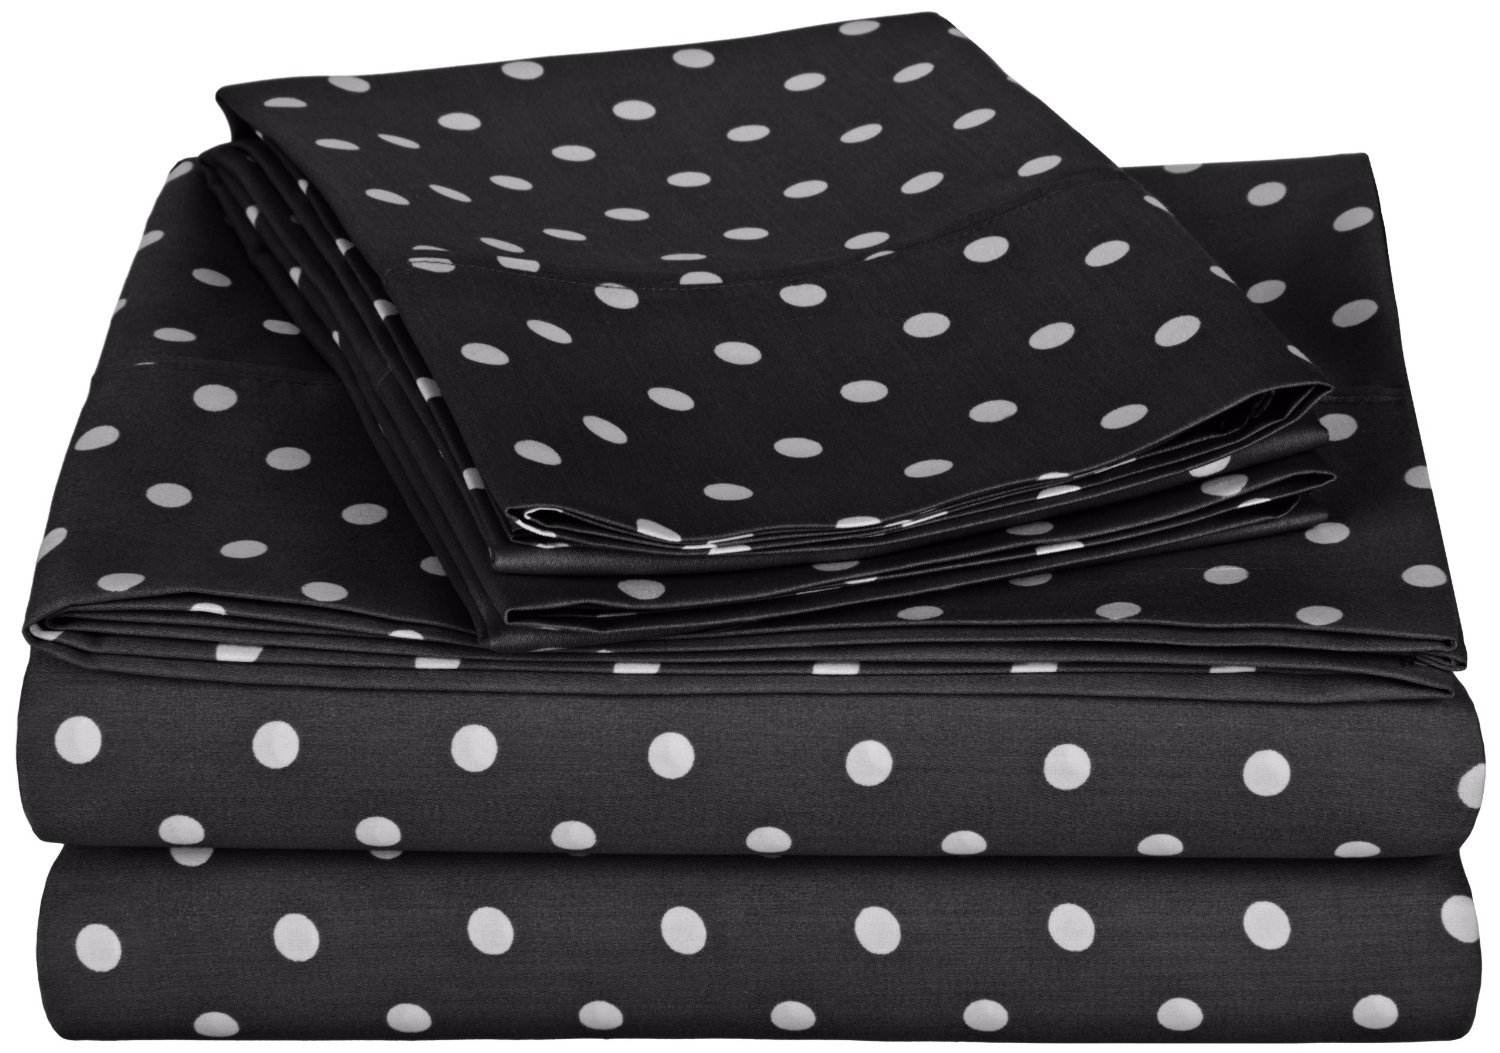 Amazon.com: Superior Polka Dot Sheet Set, 600 Thread Count Cotton Blend  Bedding Sets, Soft And Wrinkle Resistant Sheets With Deep Fitting Pockets    Queen, ...